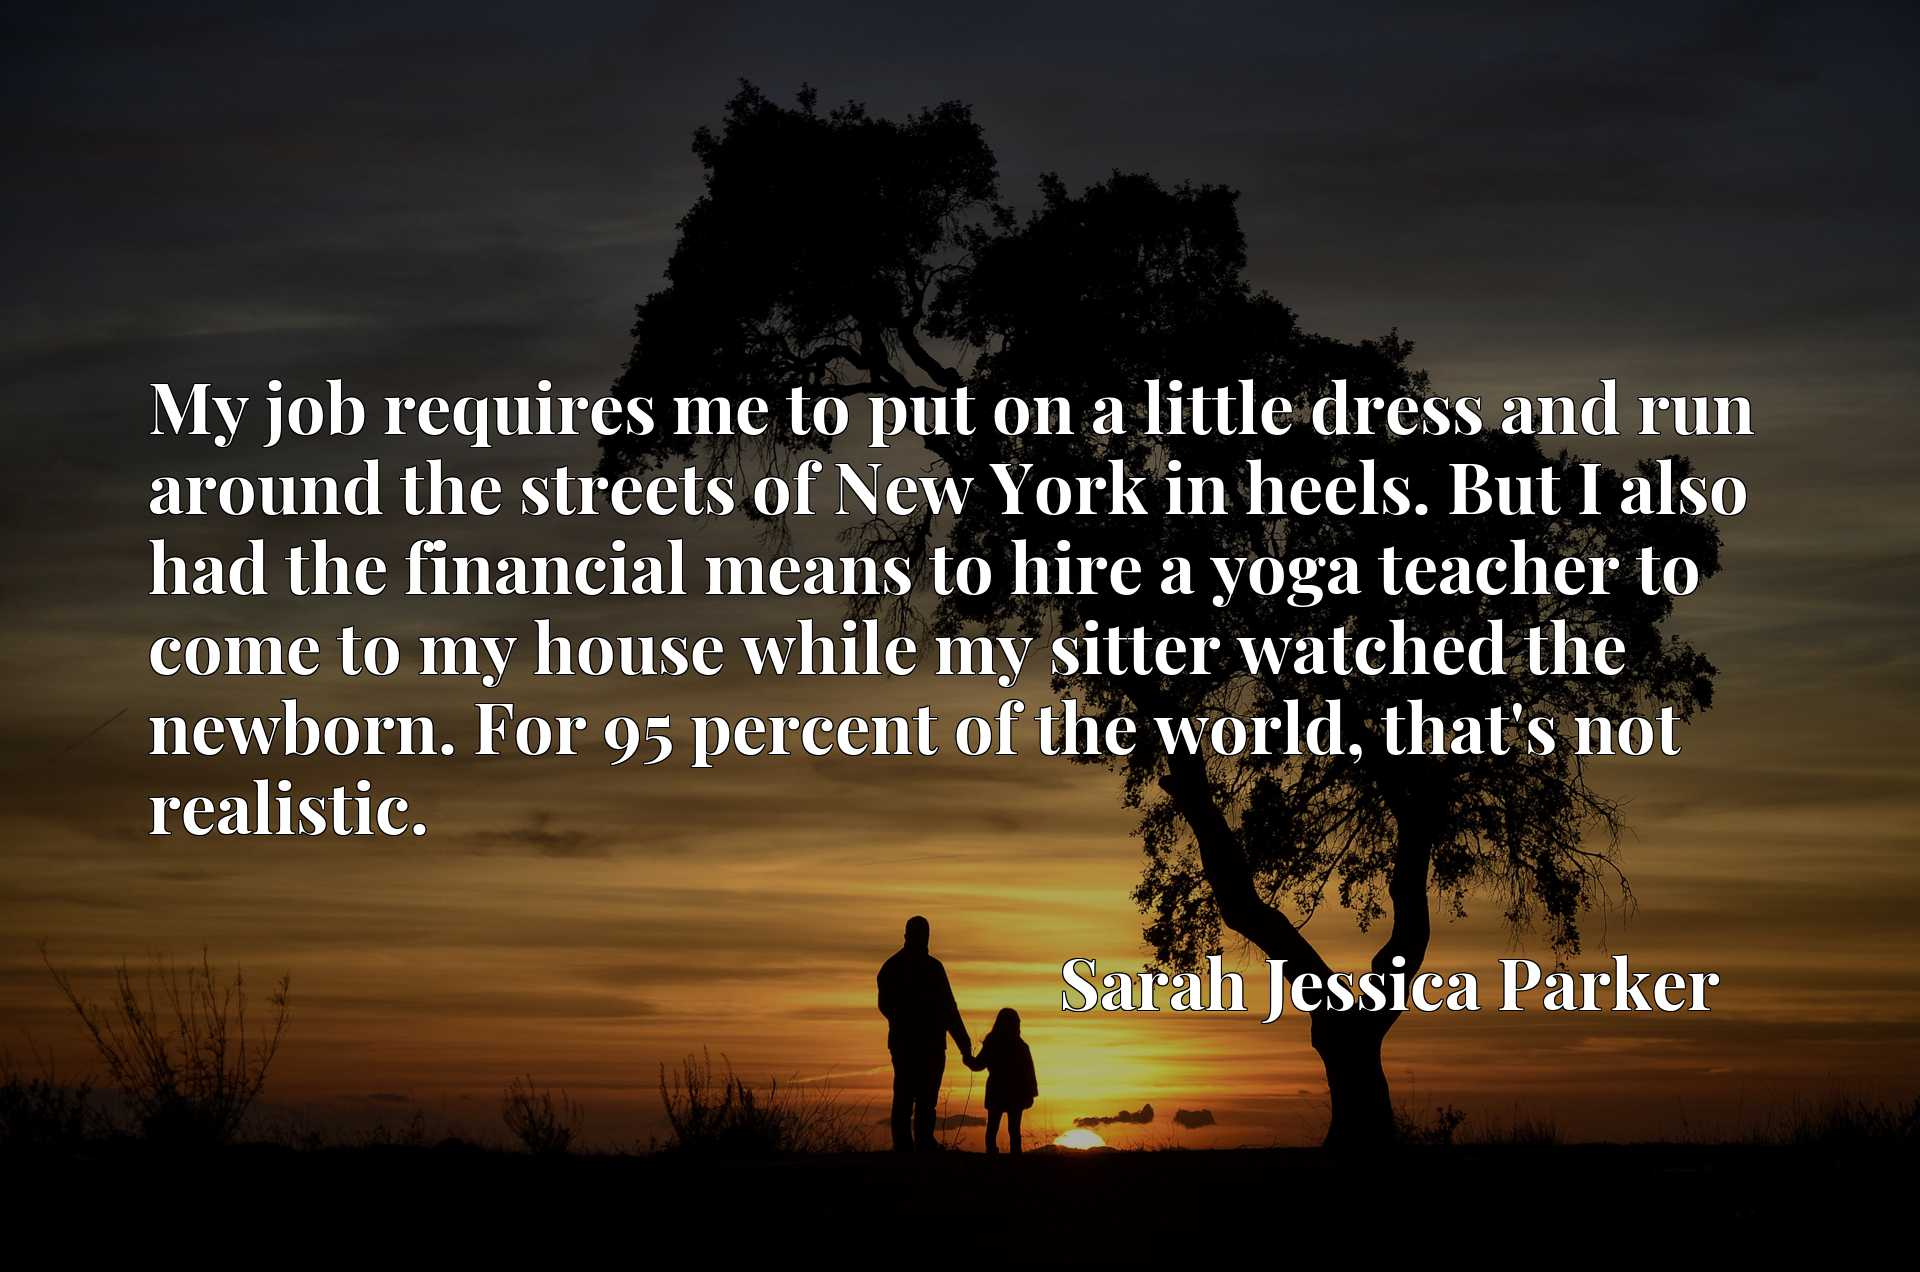 Quote Picture :My job requires me to put on a little dress and run around the streets of New York in heels. But I also had the financial means to hire a yoga teacher to come to my house while my sitter watched the newborn. For 95 percent of the world, that's not realistic.